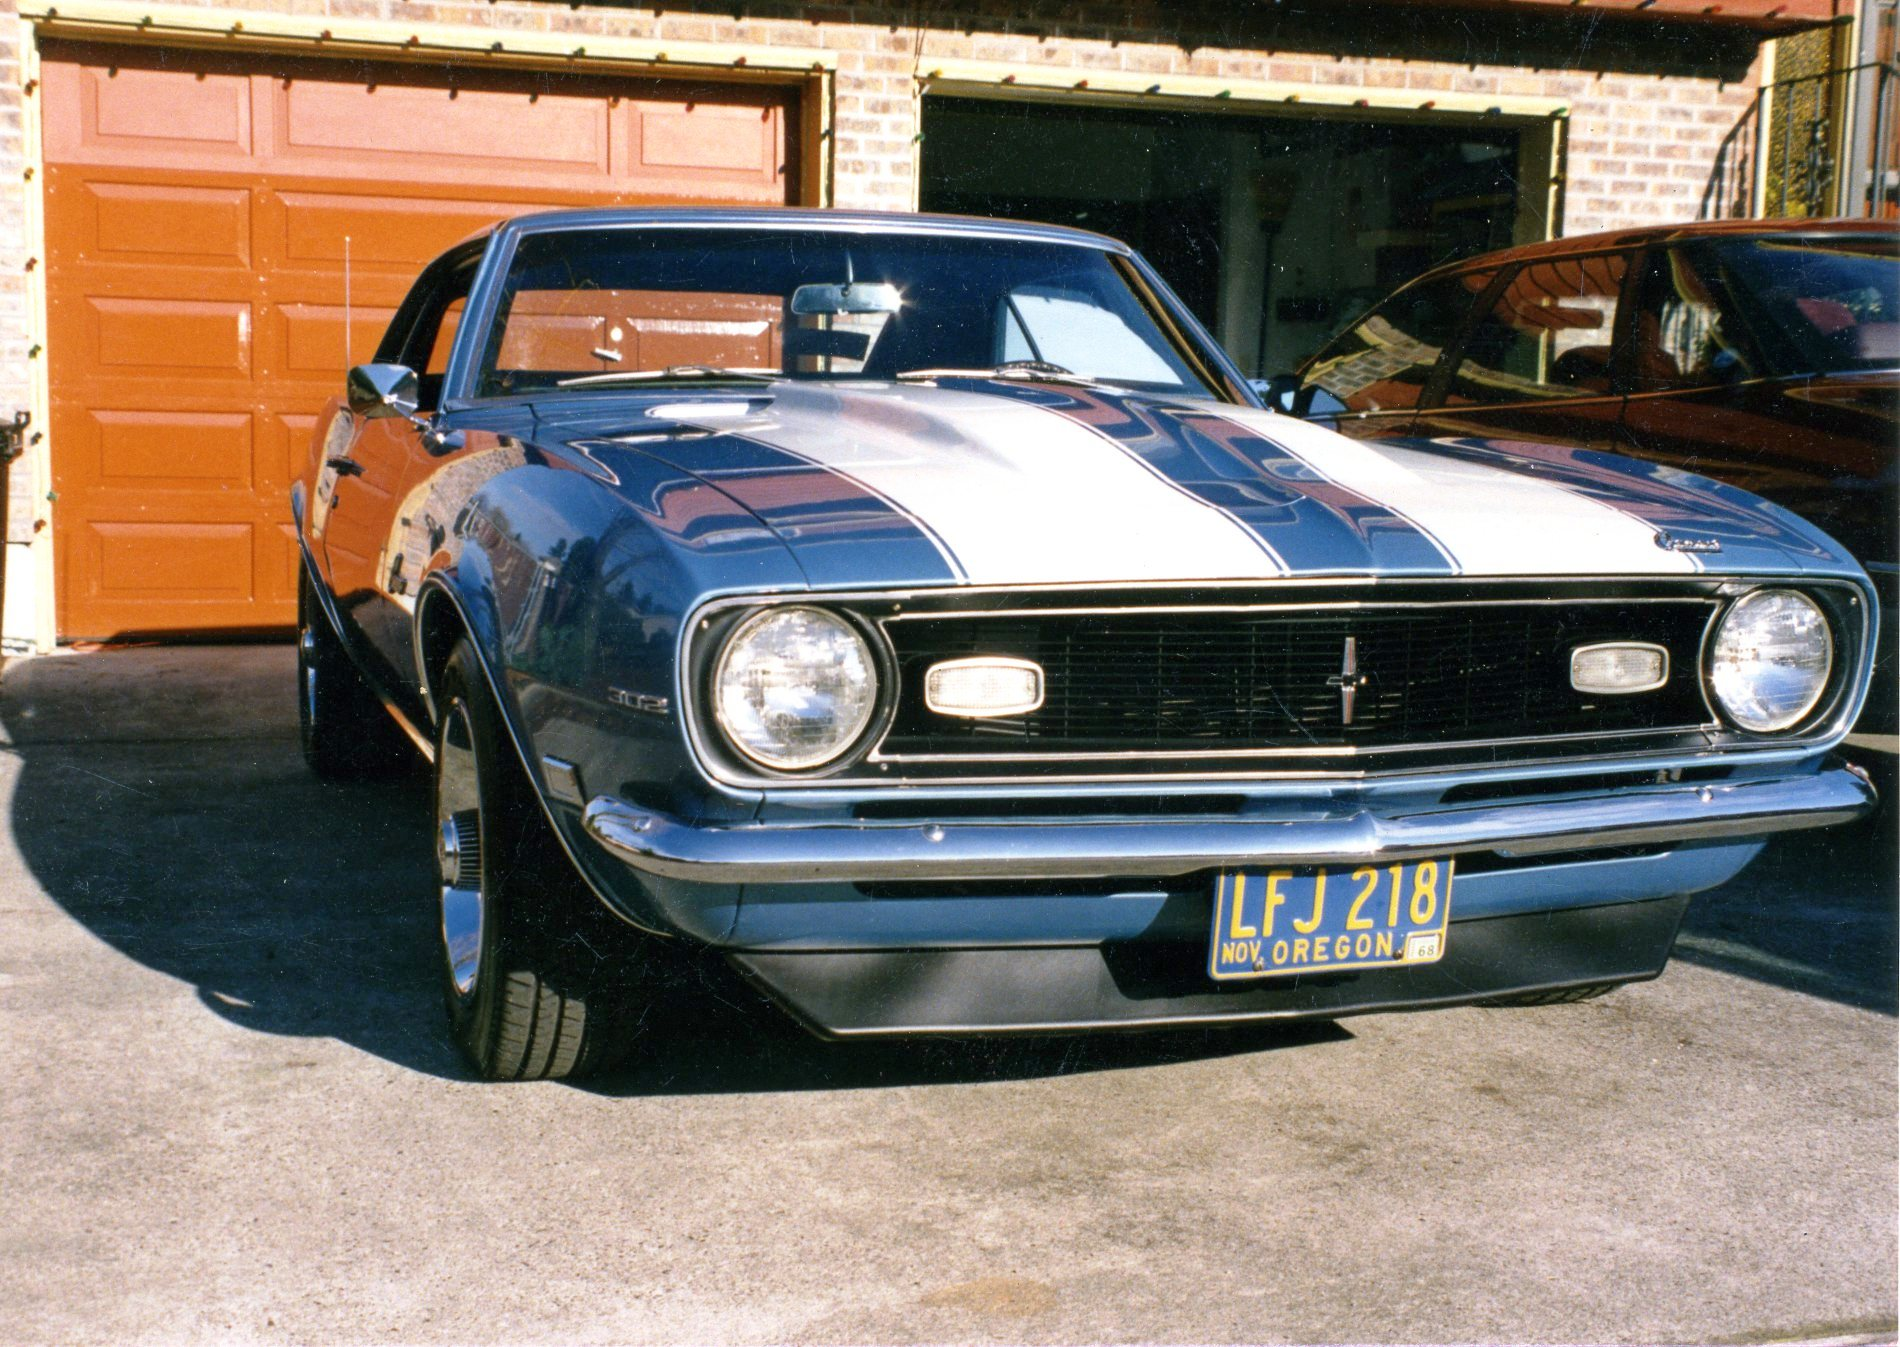 Click image for larger version  Name:68z28side078.jpg Views:45 Size:494.2 KB ID:191974